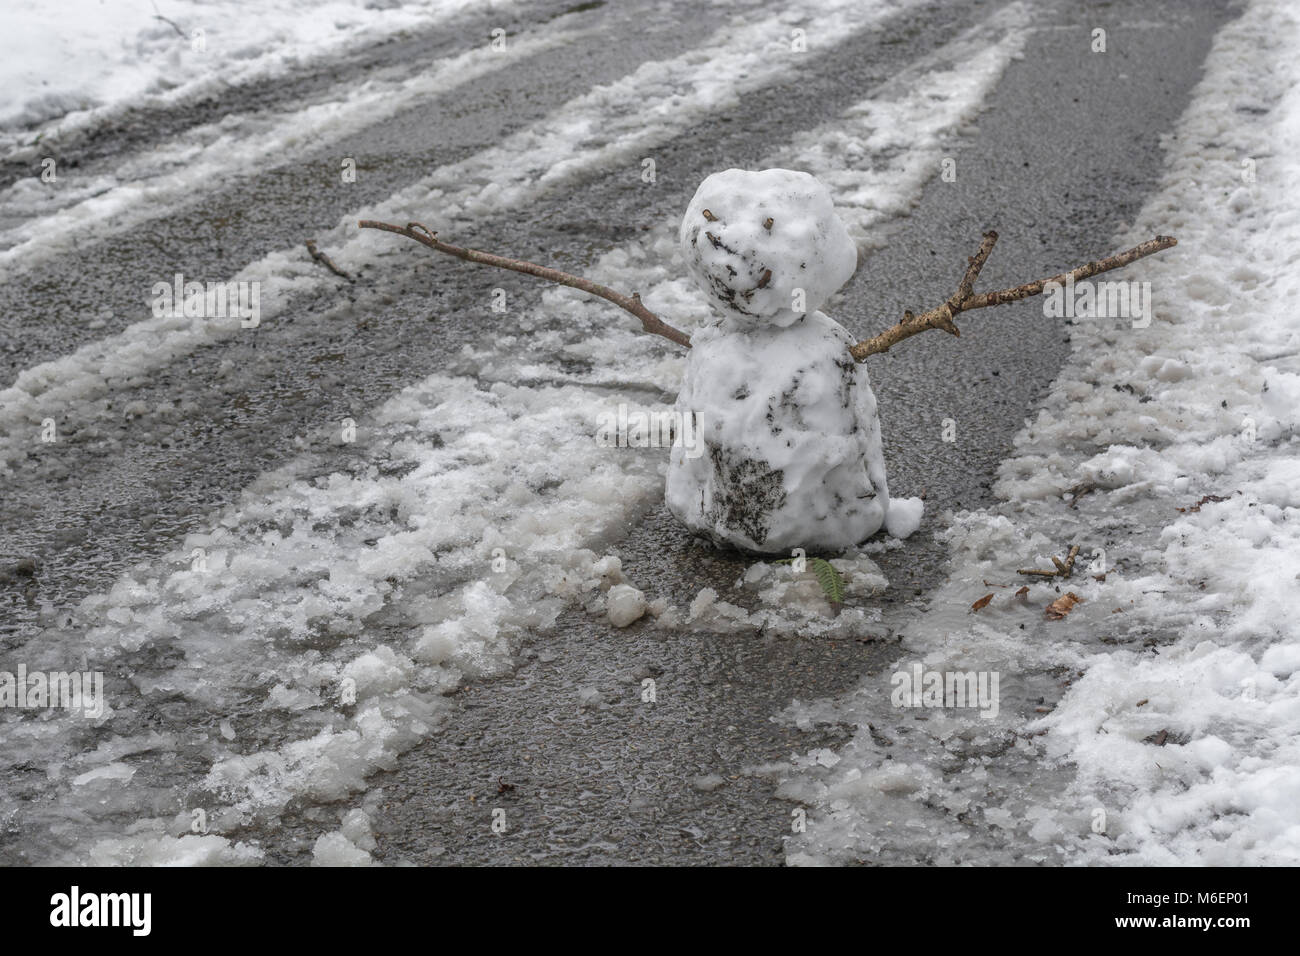 Snowman in middle of country road during the 2018 Beast from the East polar vortex snow conditions which caused - Stock Image